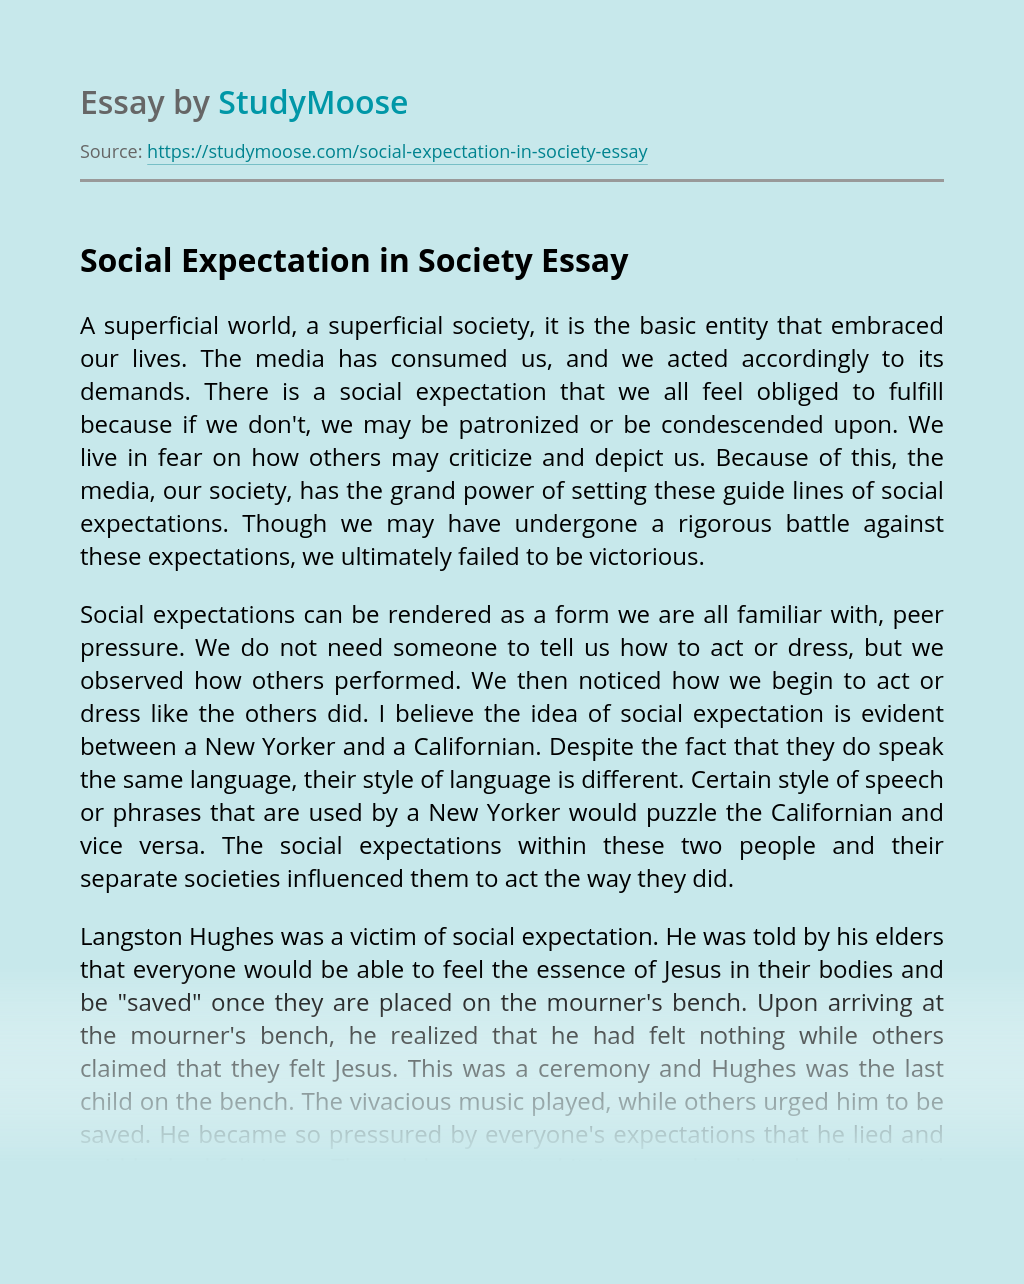 Social Expectation in Society